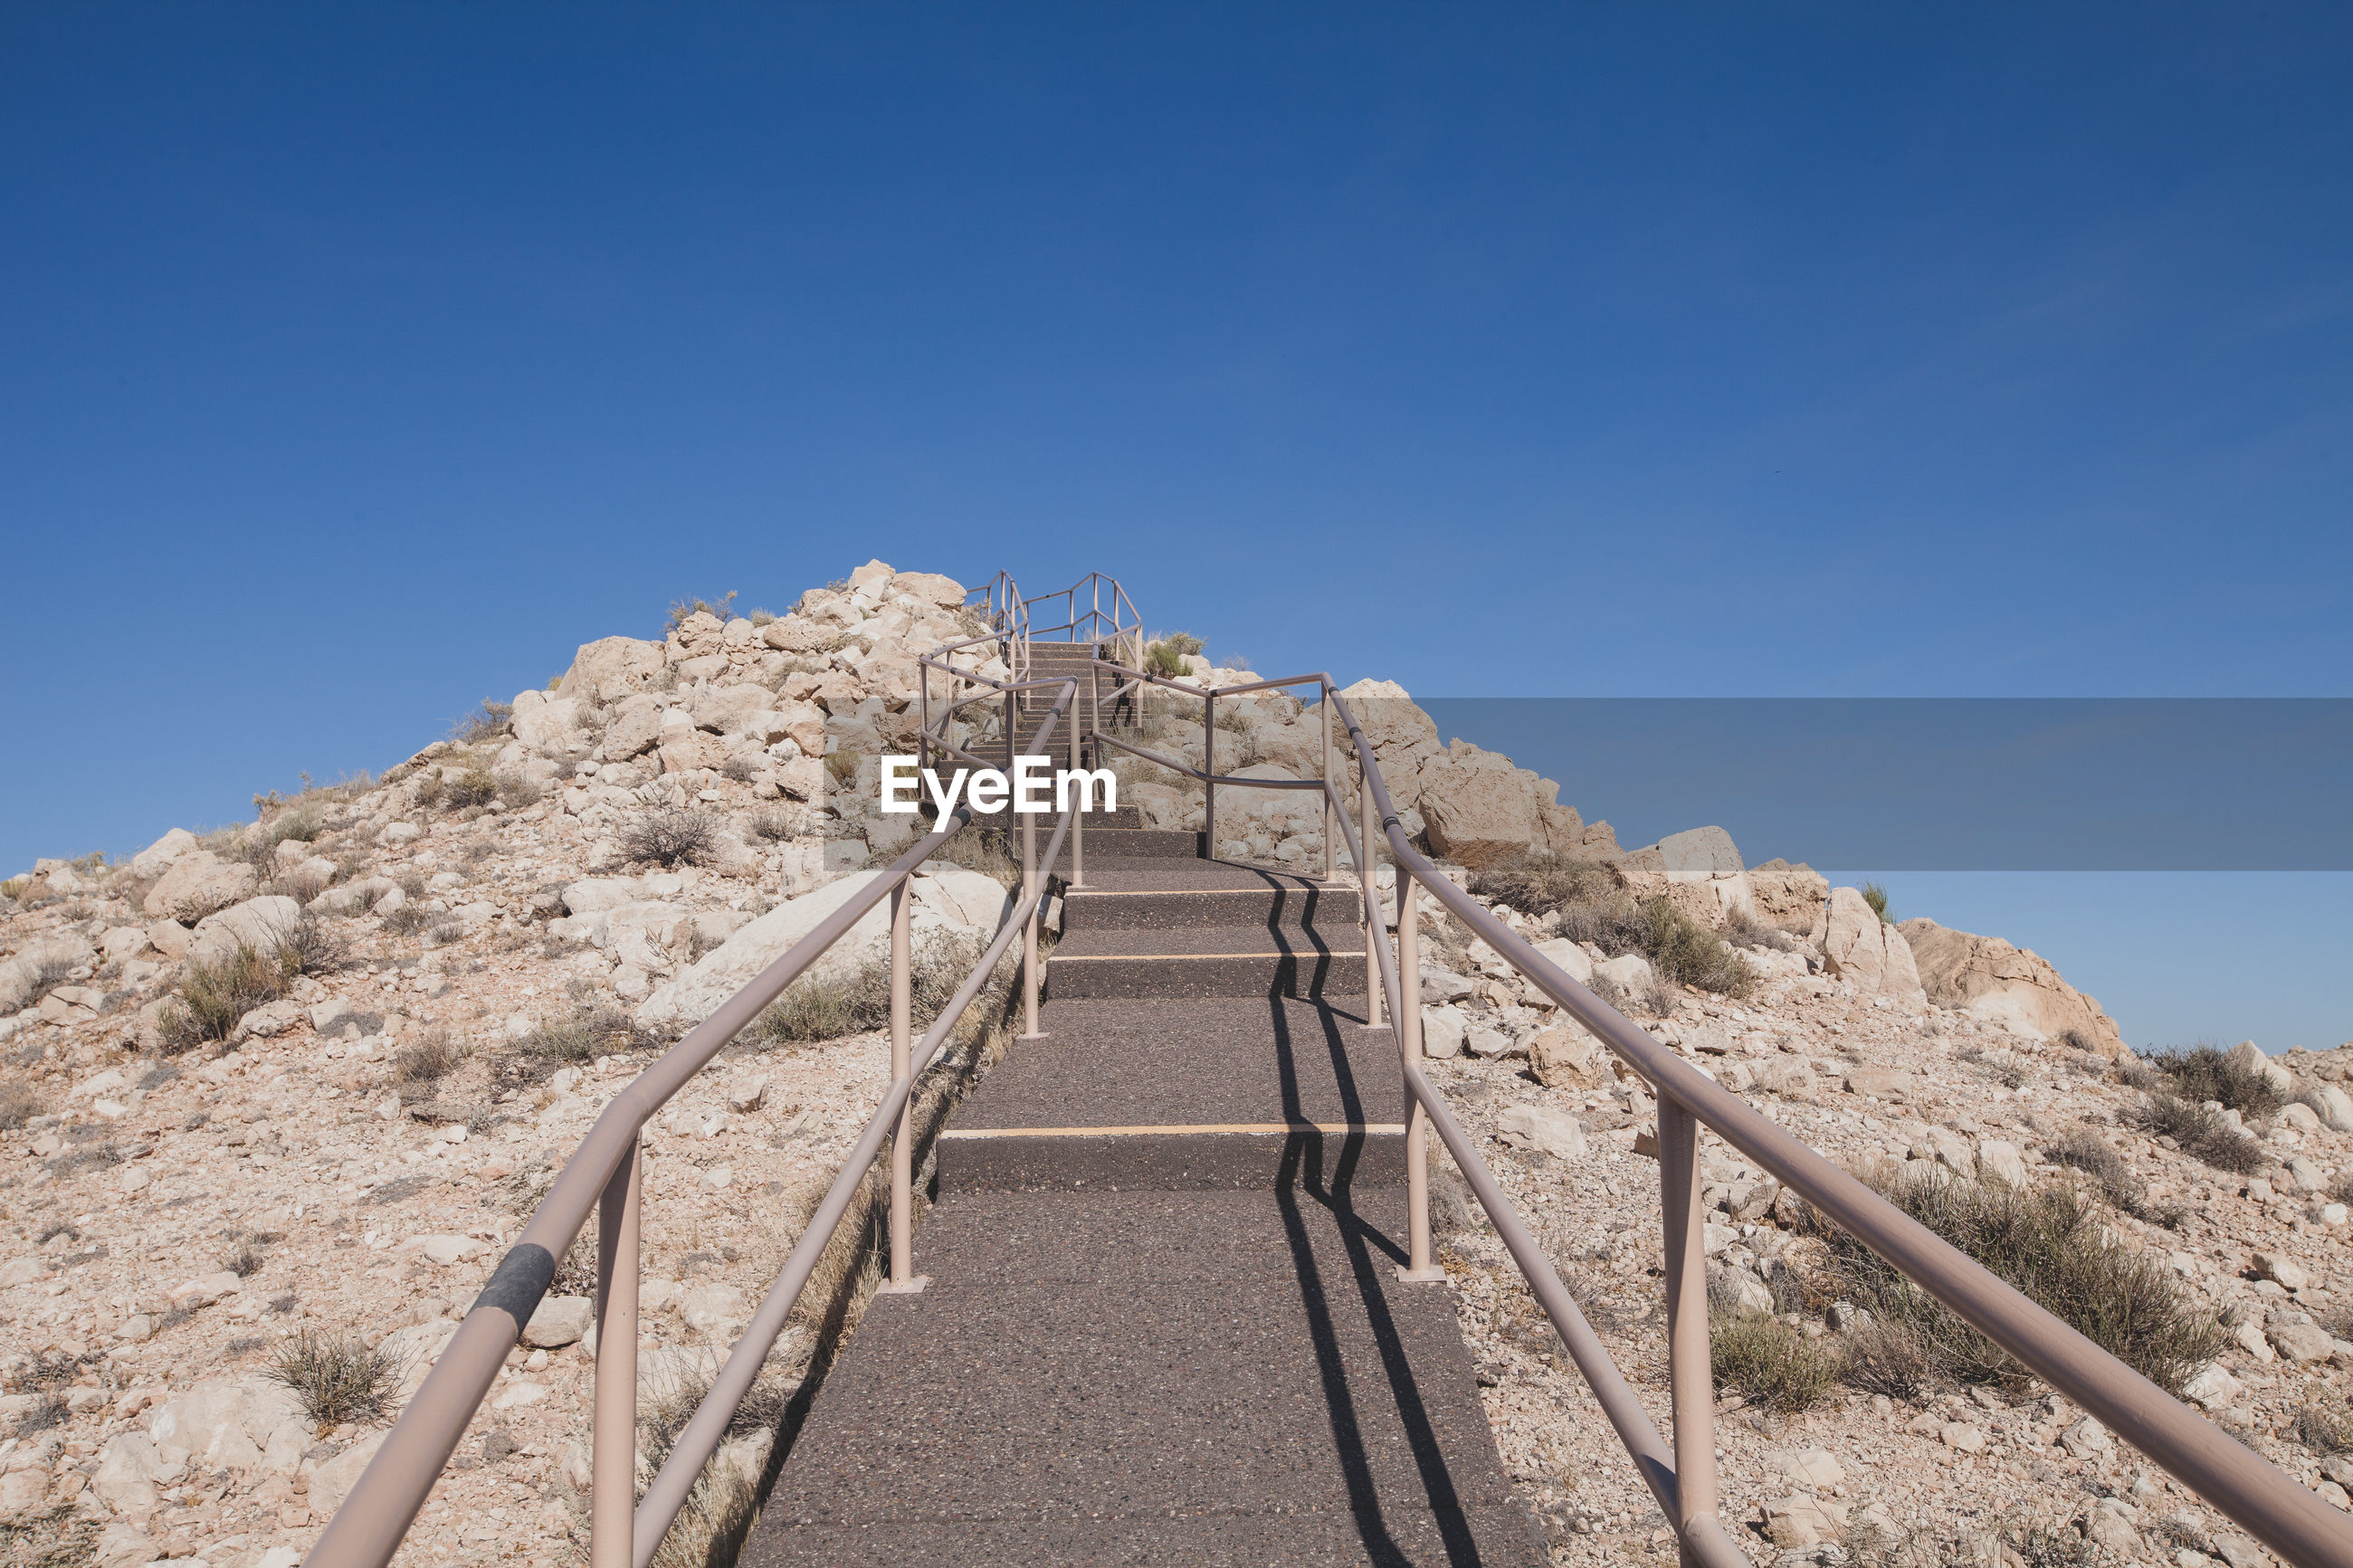 LOW ANGLE VIEW OF STAIRCASE AGAINST CLEAR SKY